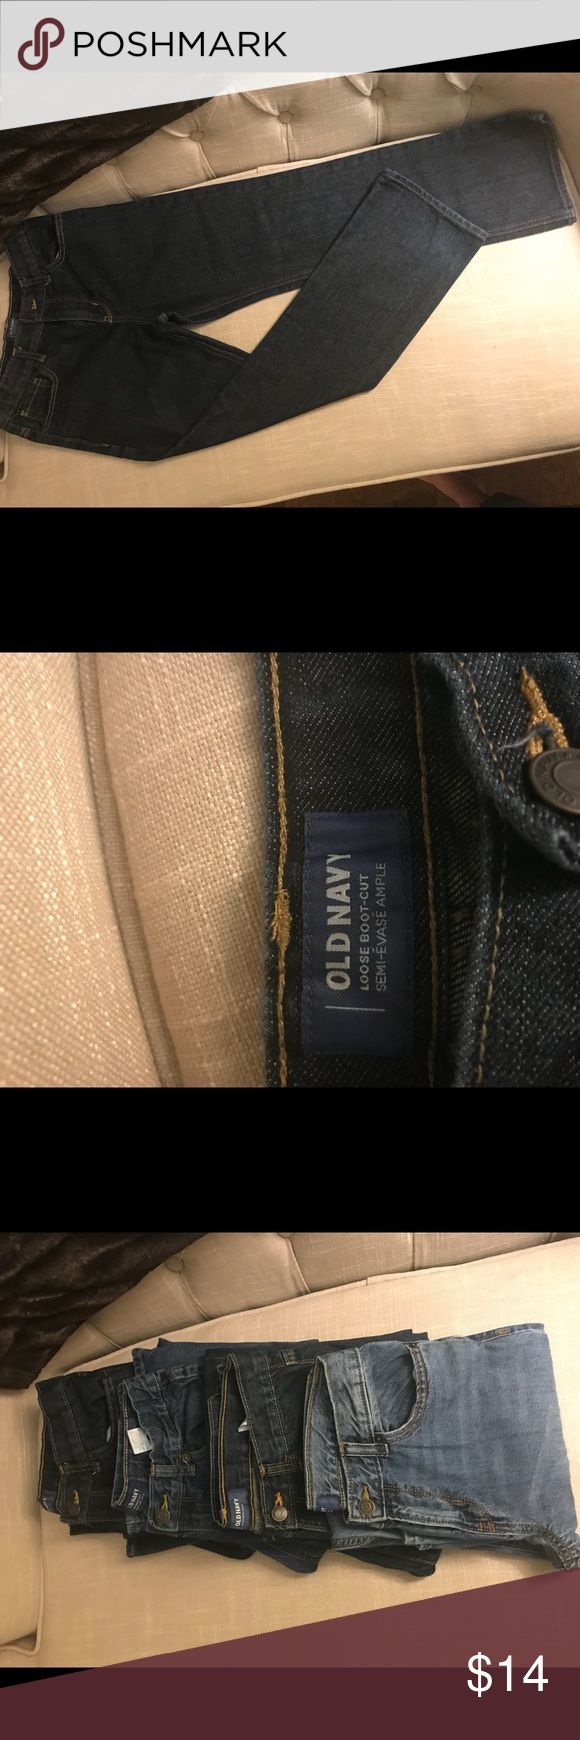 Old Navy Loose Boot Cut Jeans Dark Wash Size 14 Boys Size 14, loose boot cut jeans with adjustable elastic waistband .  EUC with no signs of wear. Son had a growth spurt right after purchasing.  Check out my other listings for more great deals on boys clothing.  Bundle and save more! Old Navy Bottoms Jeans